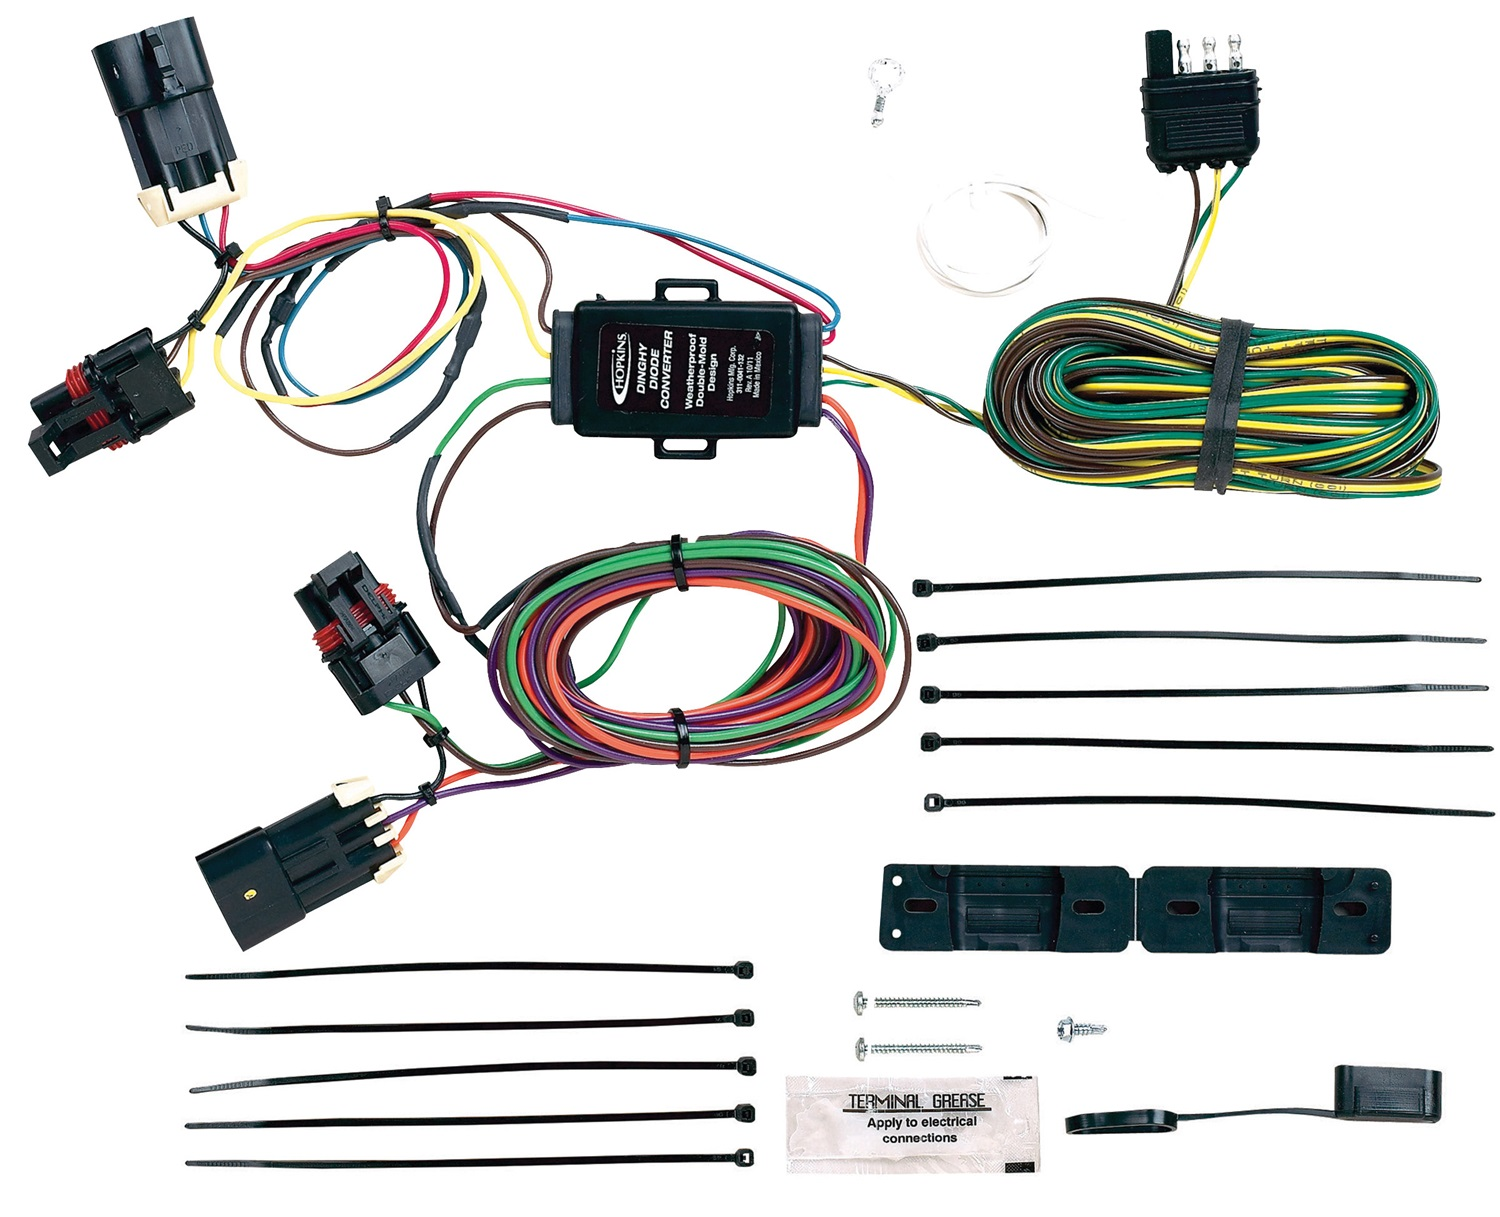 hight resolution of hopkins towing solution 56100 plug in simple vehicle to trailer wiring harness walmart com